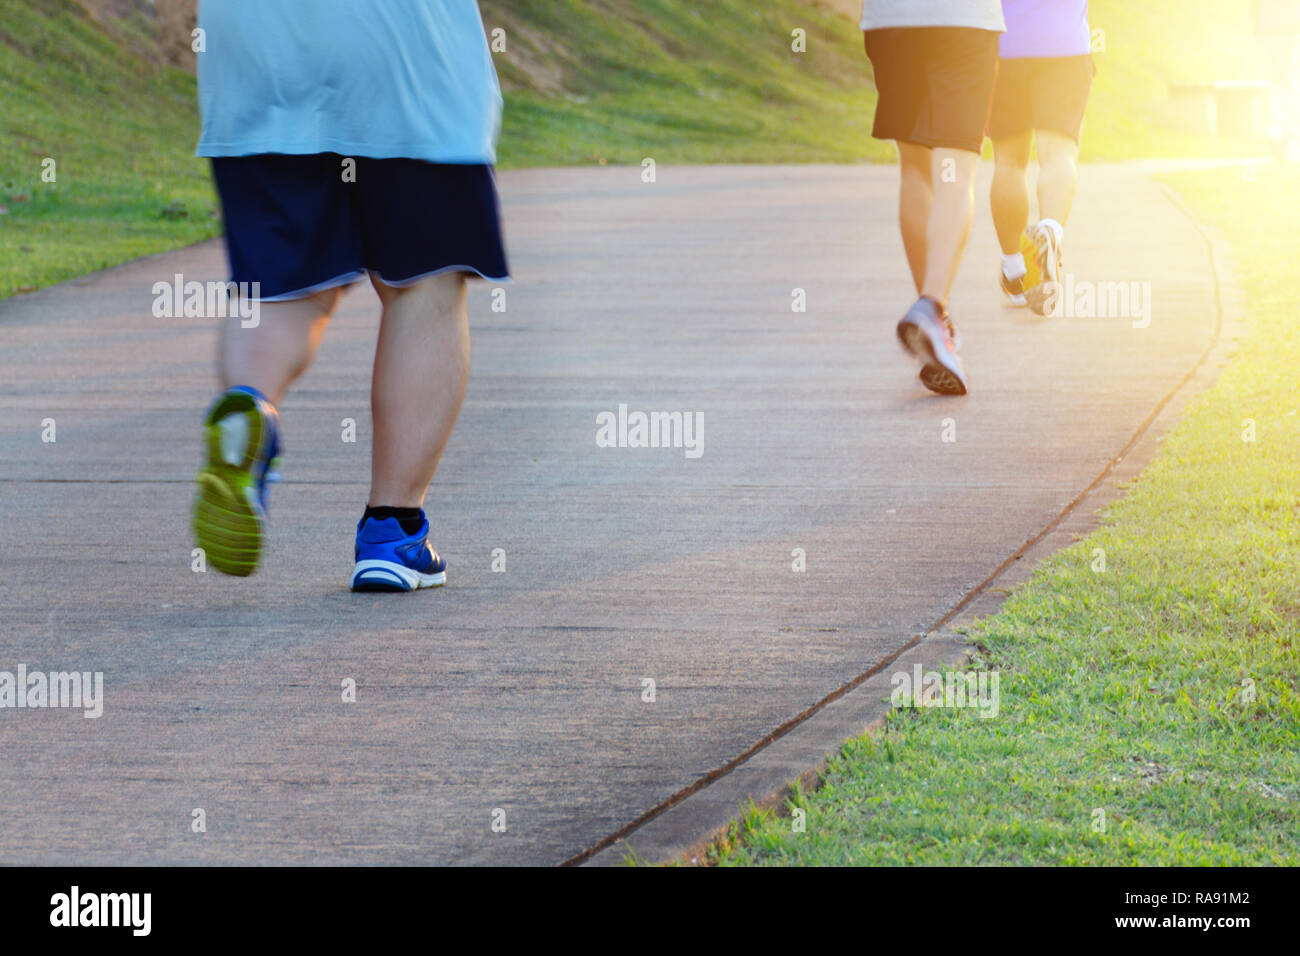 Fat man jogging, catching up with thin men. Low angle view of runners running in park. Blurred feet motion group of runners, Fitness and healthy - Stock Image